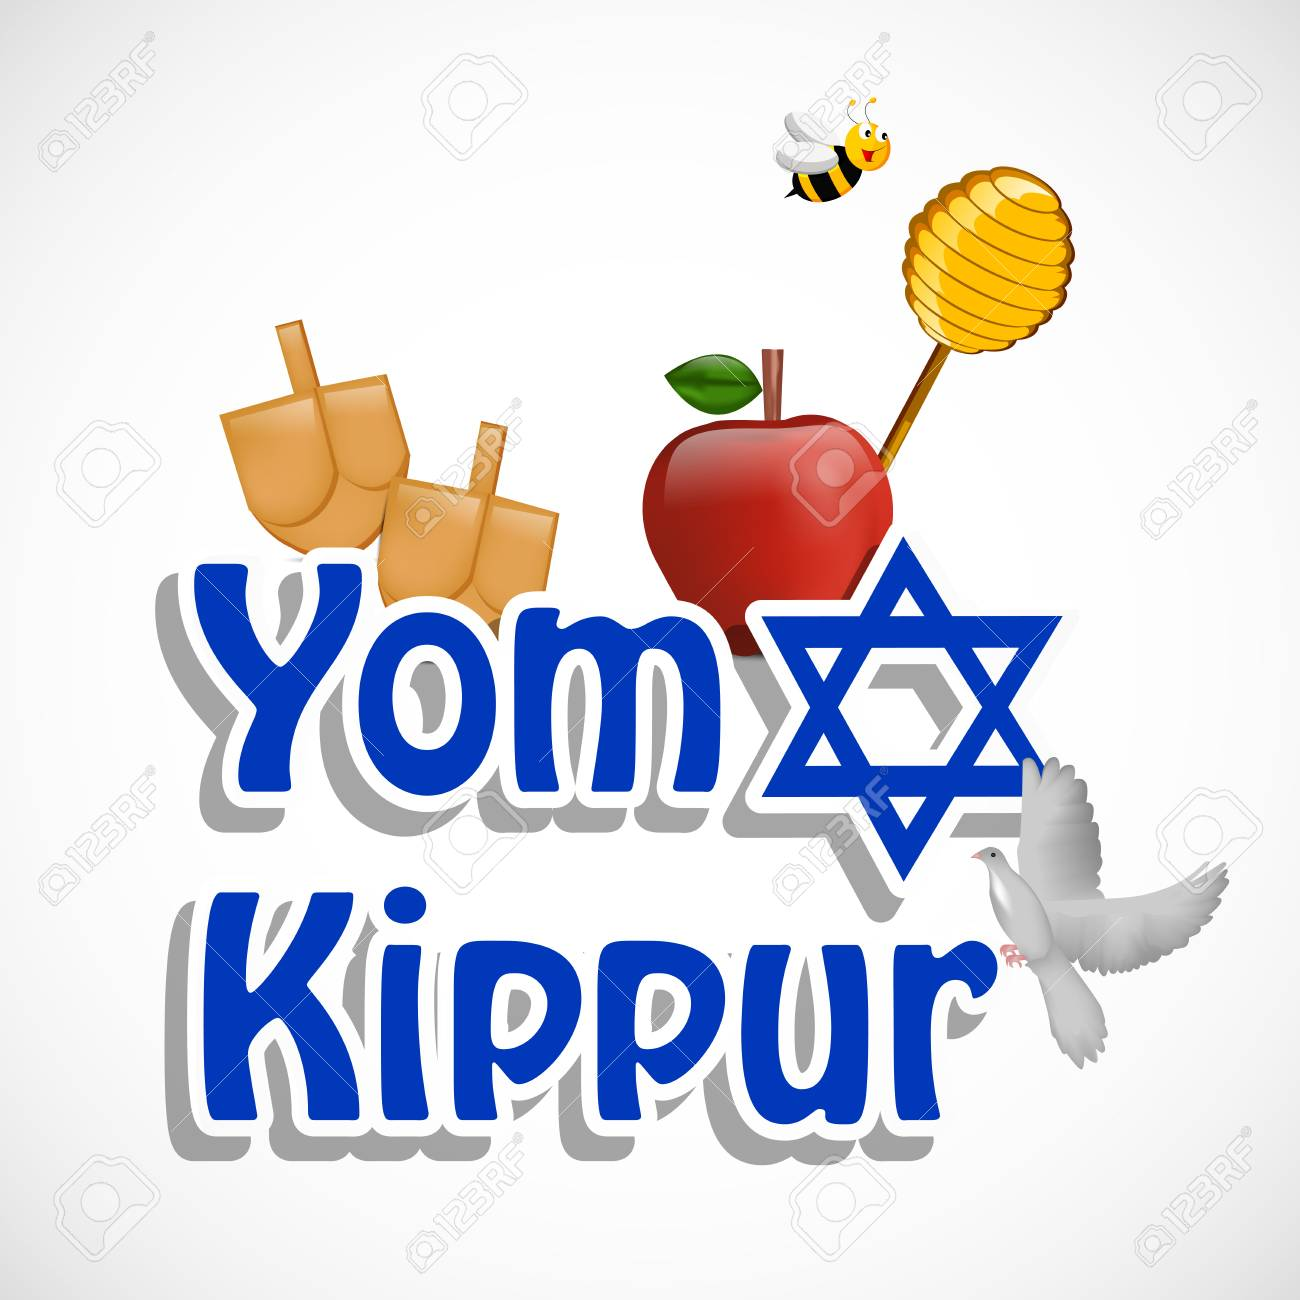 illustration of elements jewish yom kippur background.